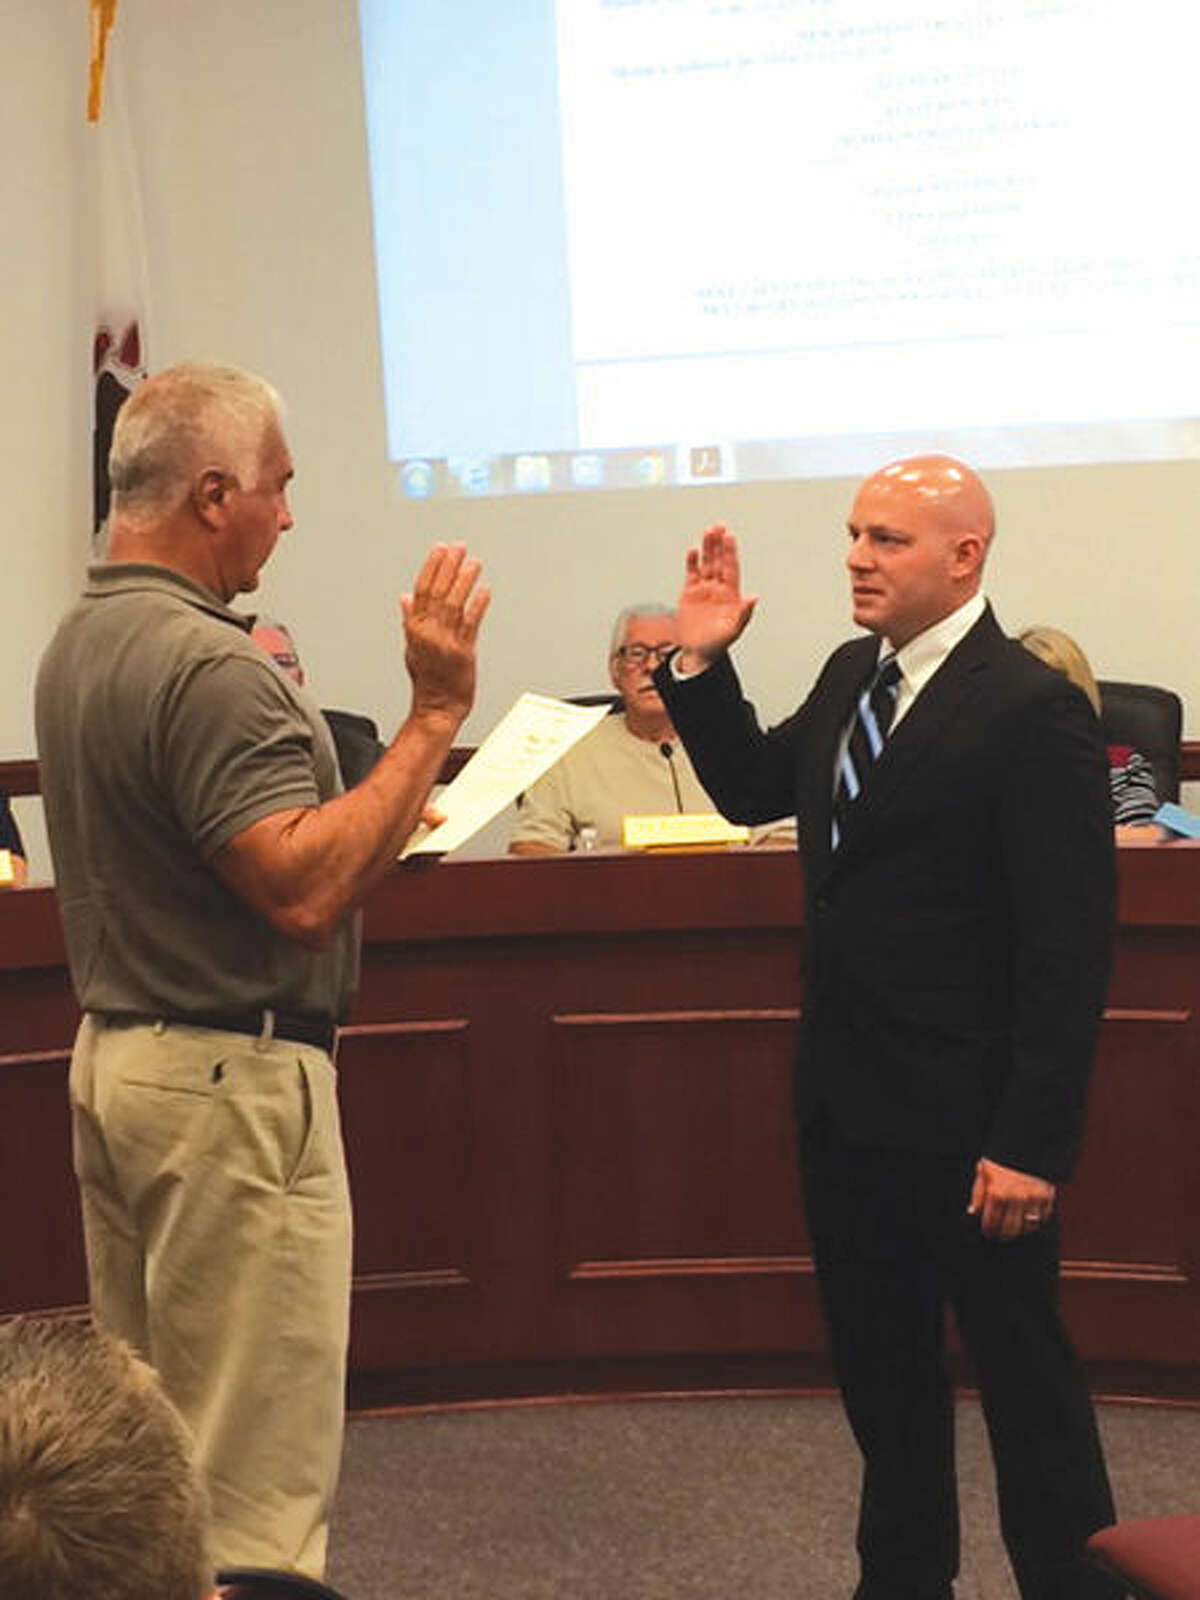 Gary Kukla, left, Chair of the Maryville Fire and Police Board of Commissioners, swears in new Maryville Police Officer Keith Mumper Wednesday.